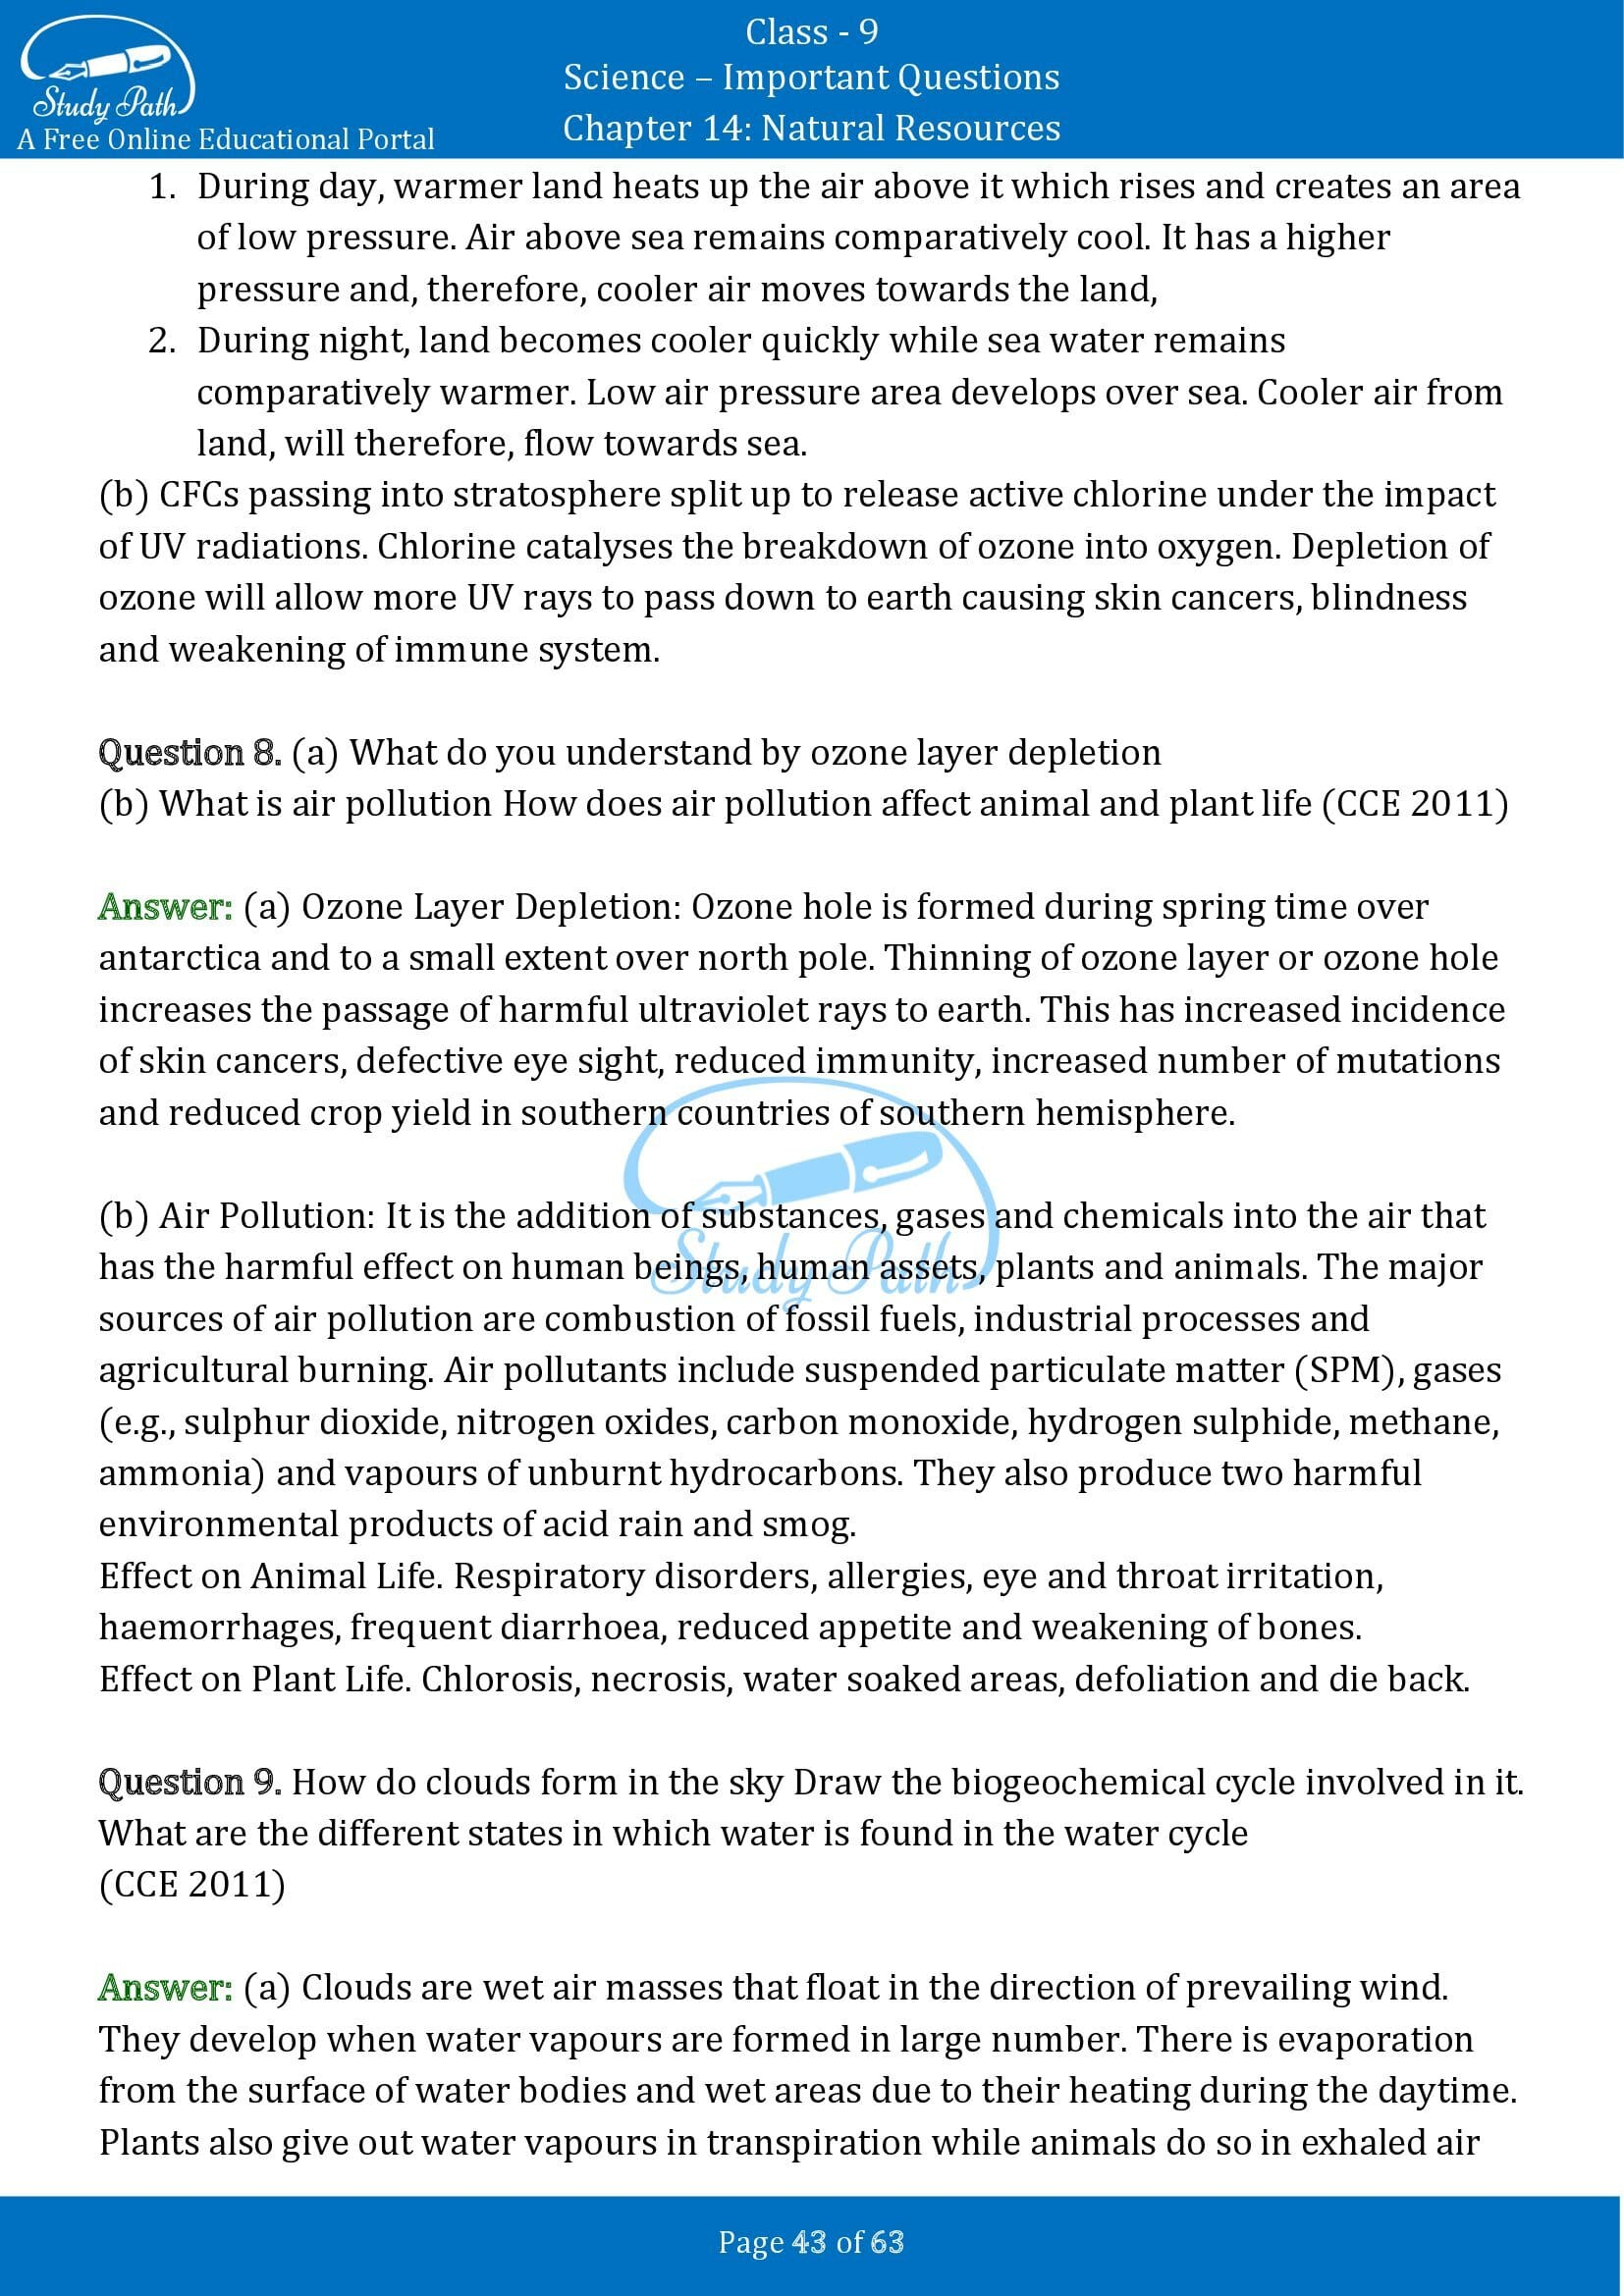 Important Questions for Class 9 Science Chapter 14 Natural Resources 00043